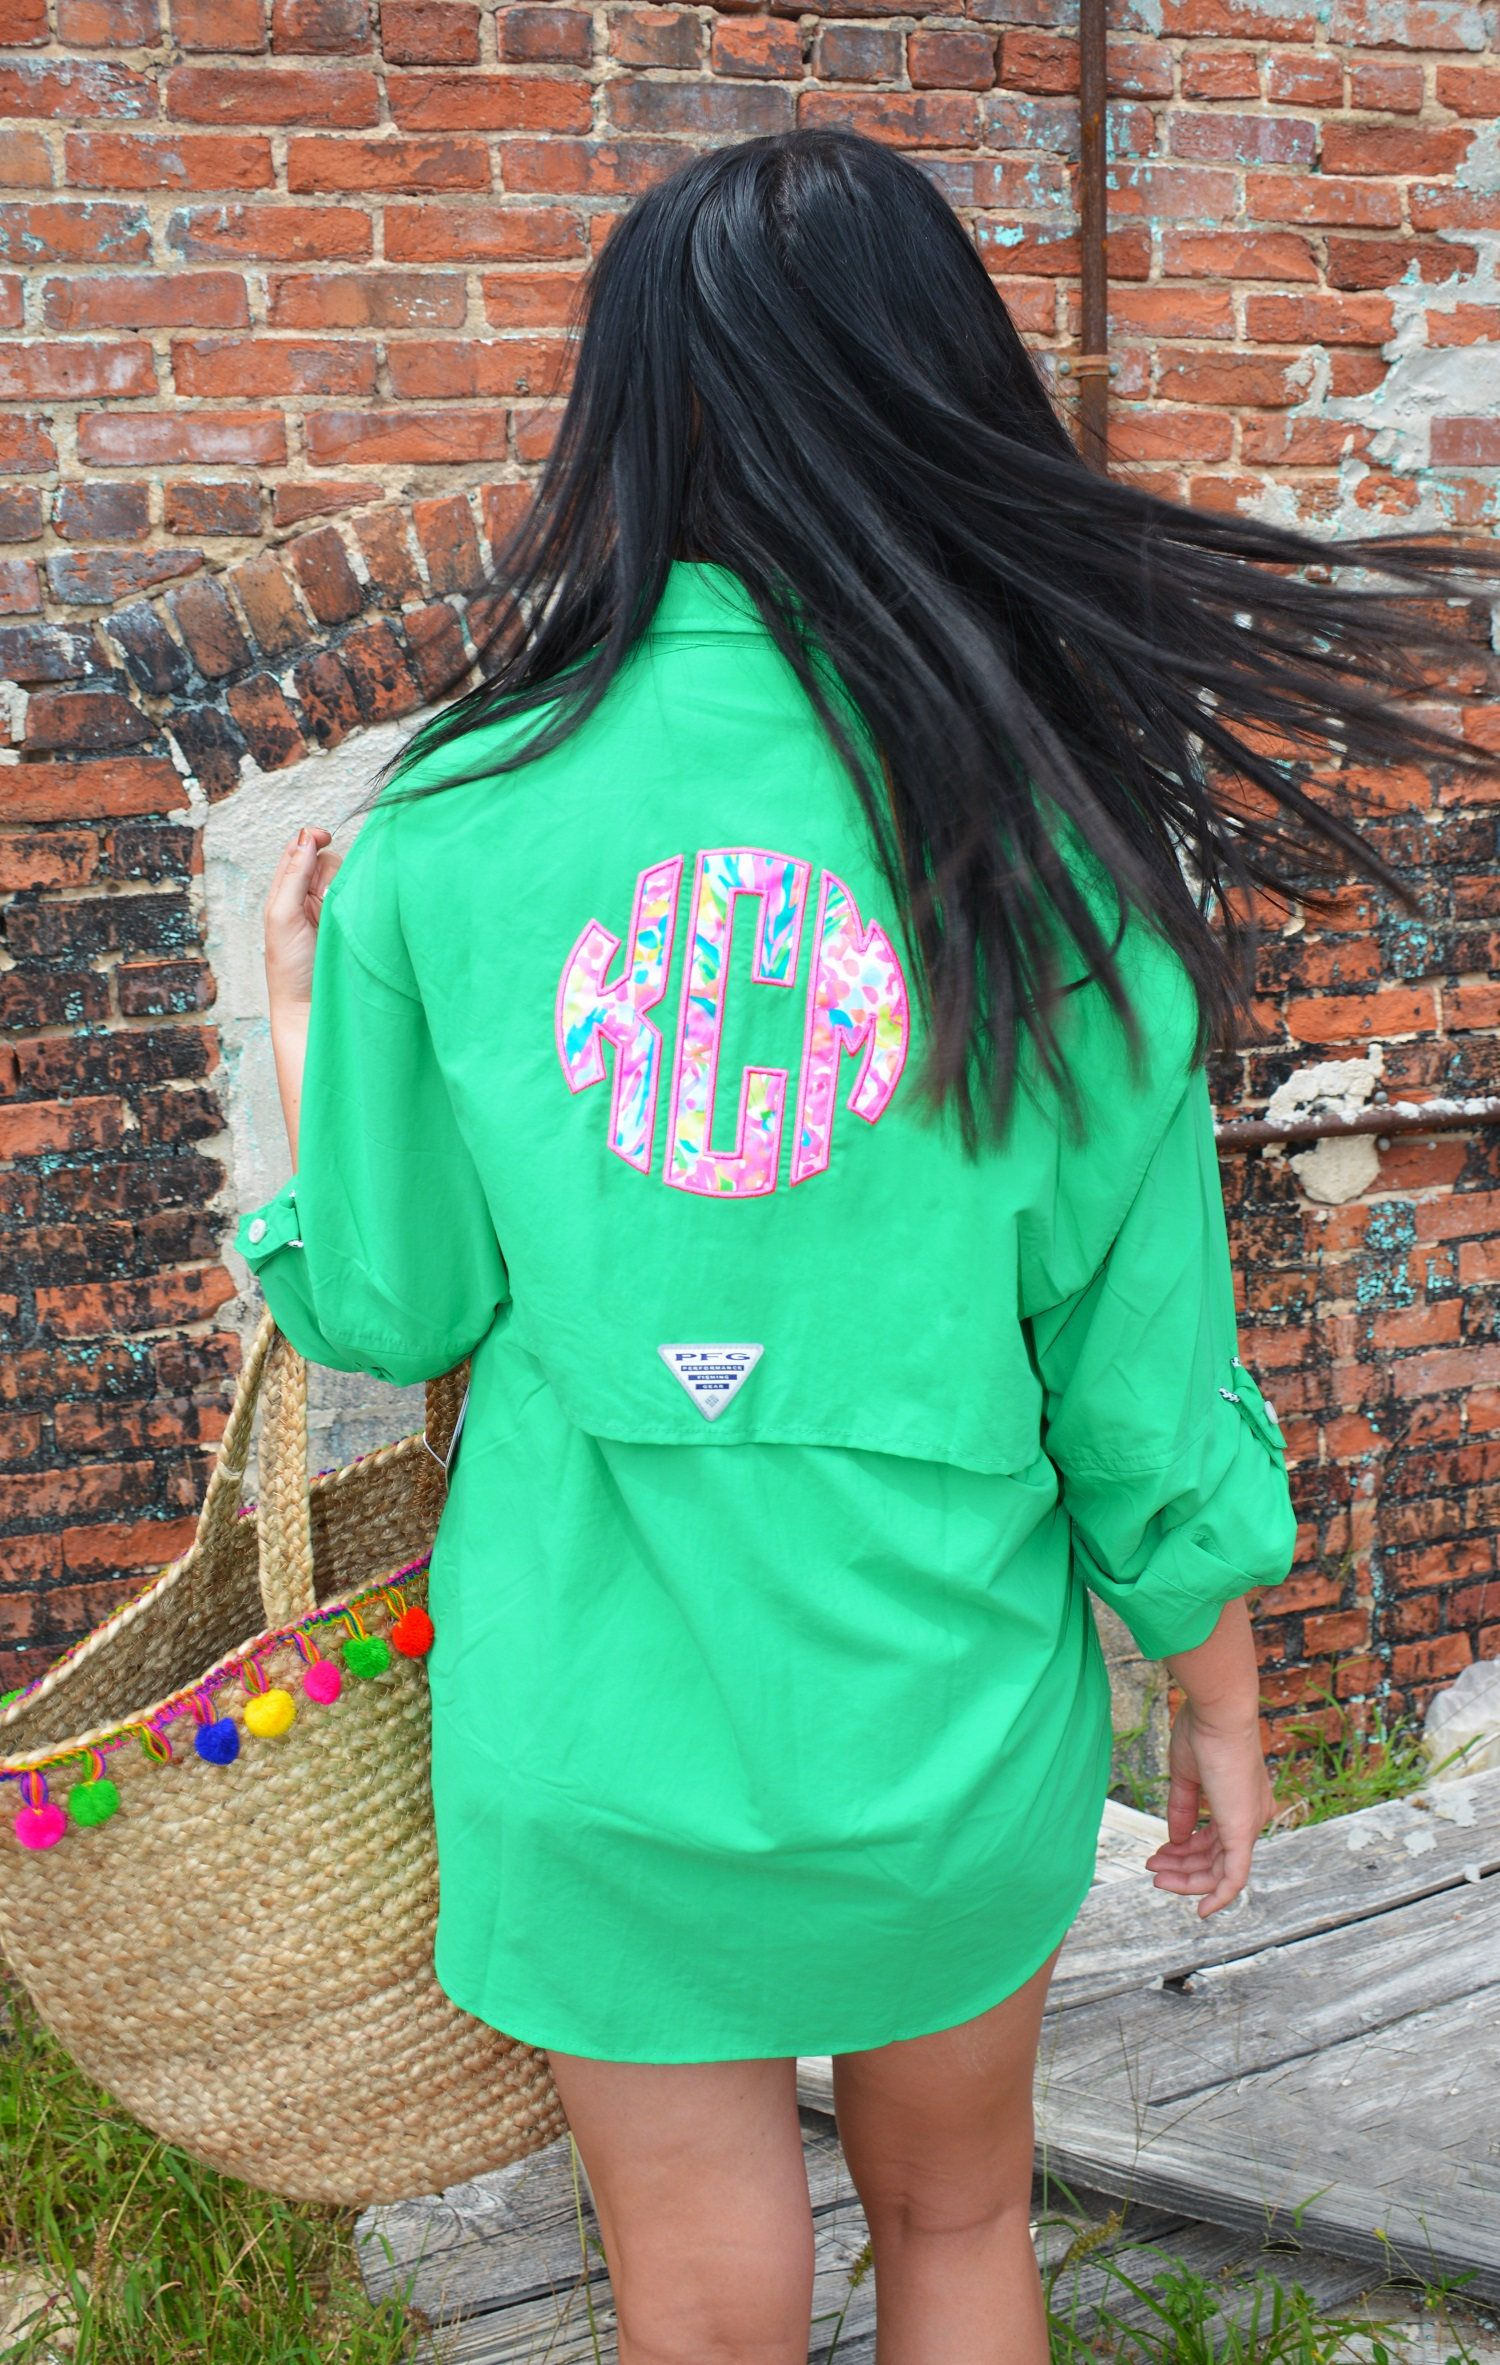 Monogram Fishing Shirt Preppy Lilly Pulitzer Monogrammed Columbia PFG Fishing Shirt Cover Up by TantrumEmbroidery on Etsy